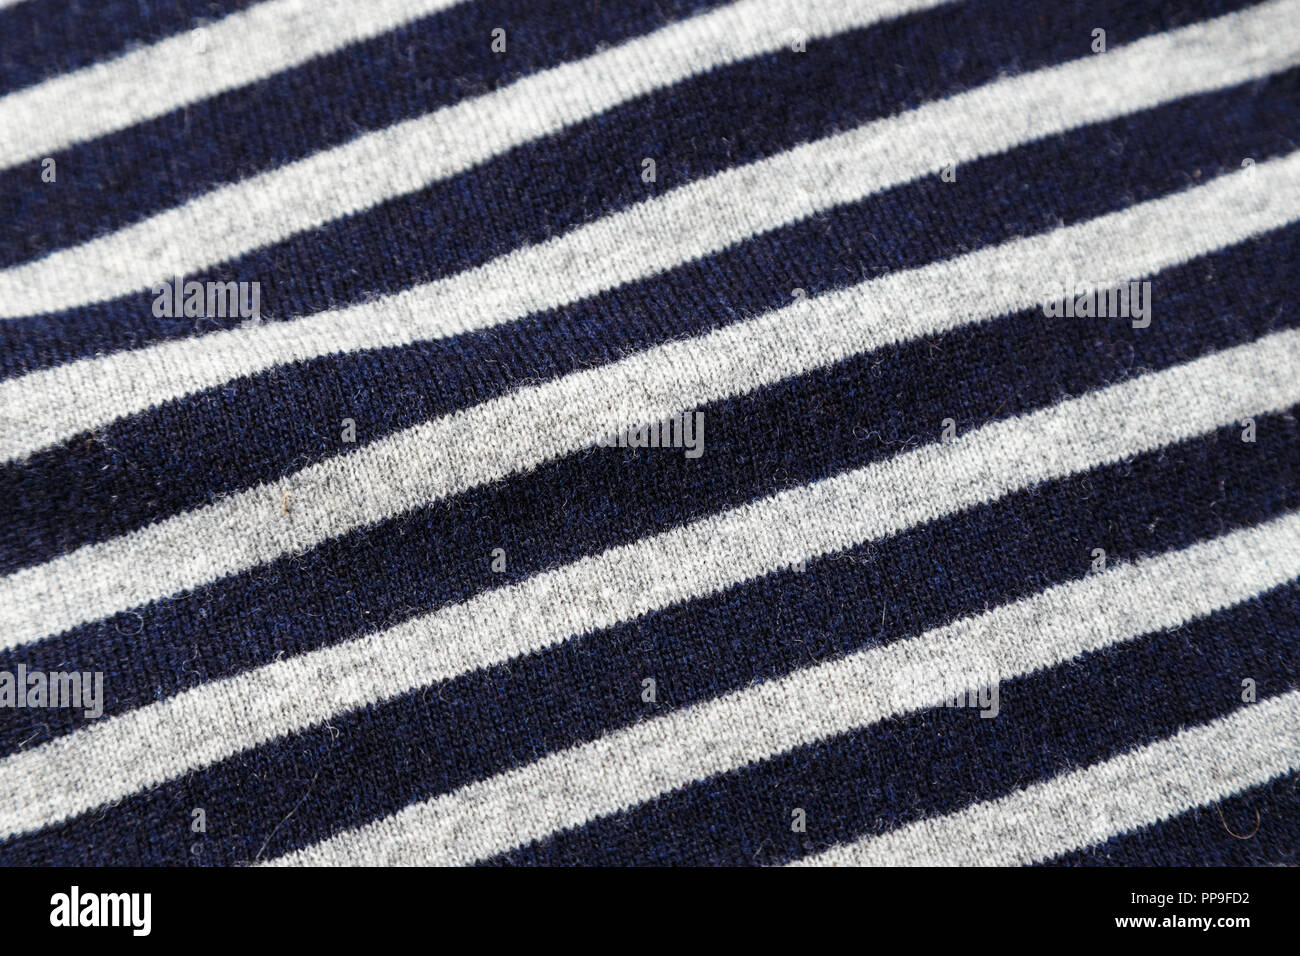 black and white nautical striped vest. background texture - Stock Image